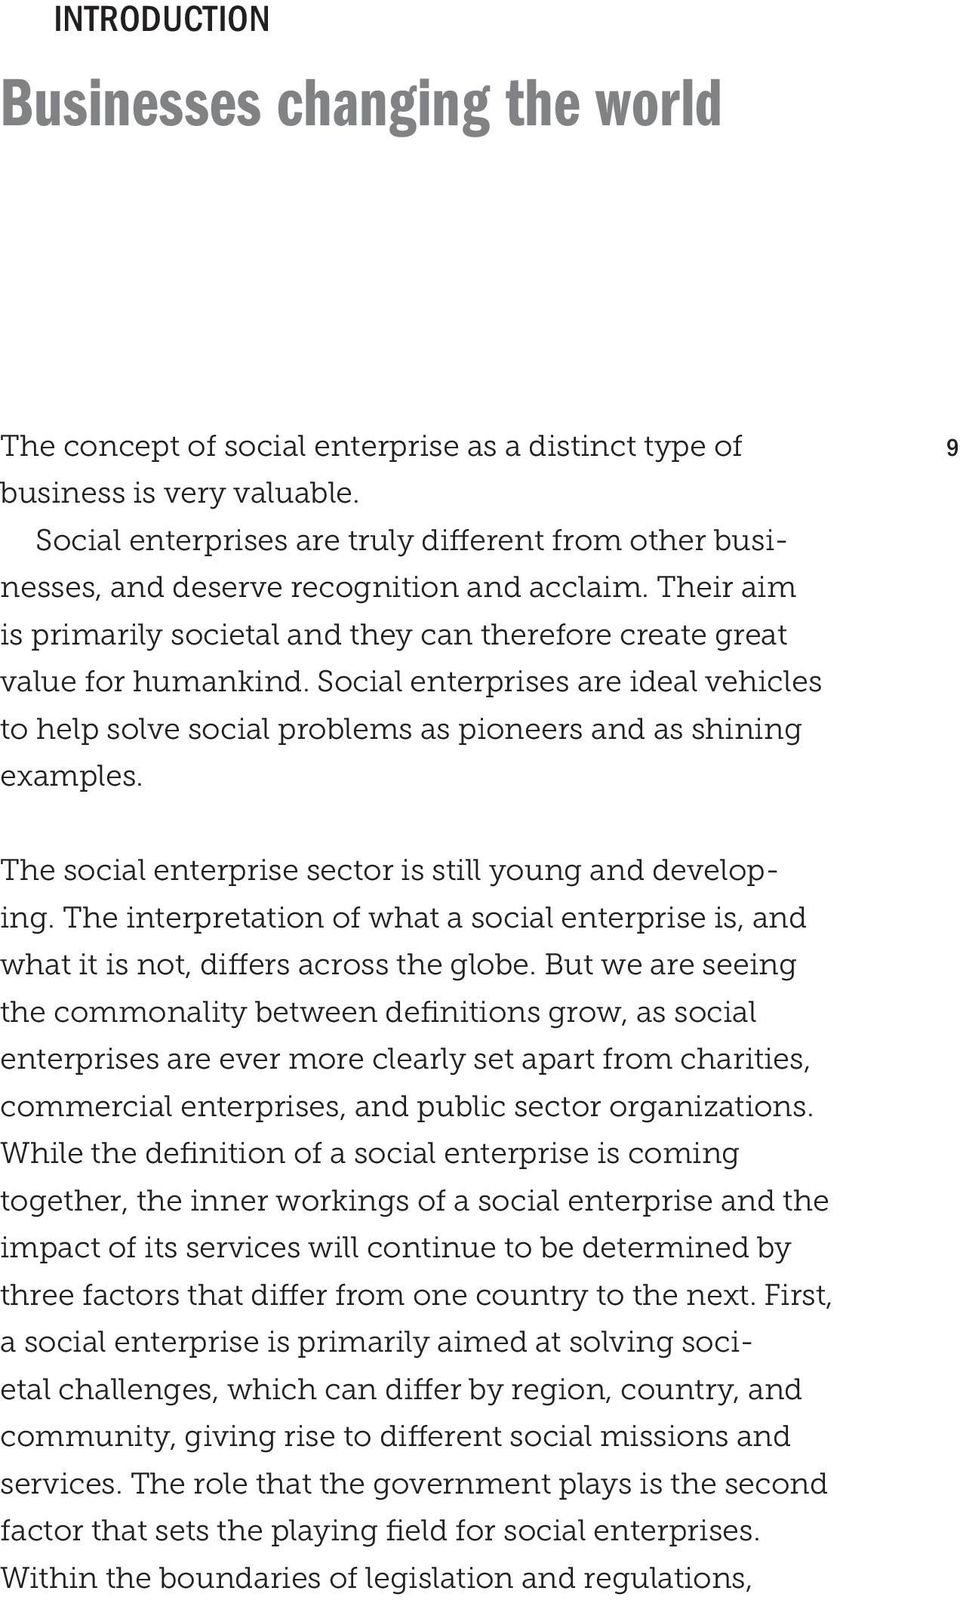 Social enterprises are ideal vehicles to help solve social problems as pioneers and as shining examples. 9 The social enterprise sector is still young and developing.